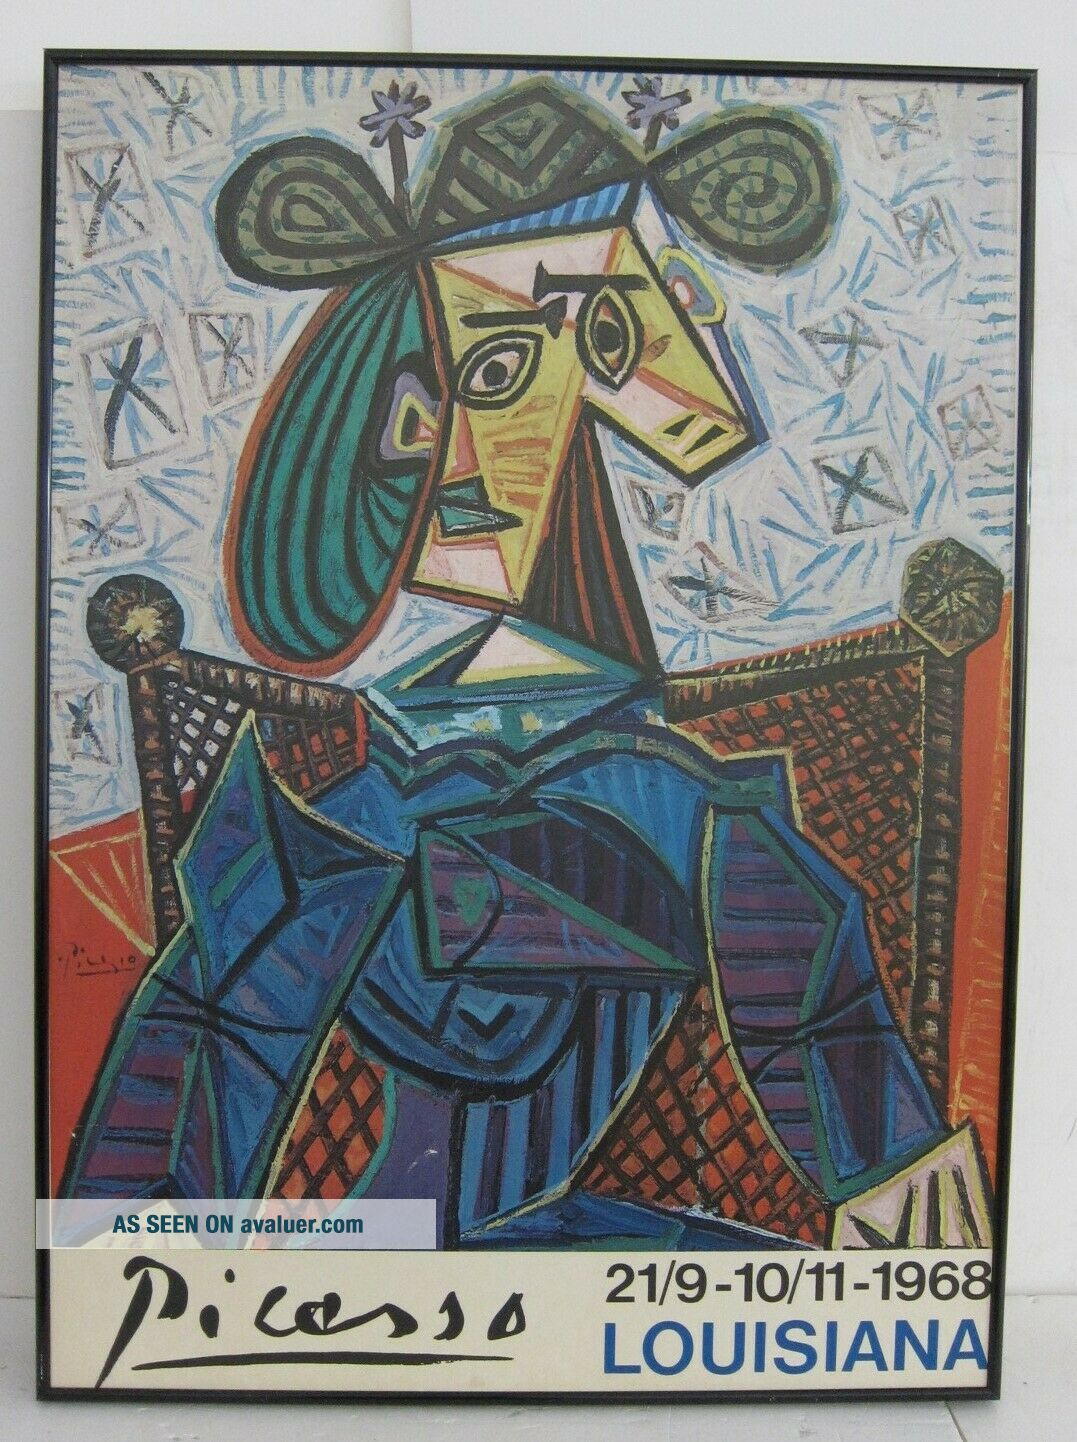 Picasso Woman in Armchair 1941 VTG Louisiana Exhibition Poster 1968 Framed 24x33